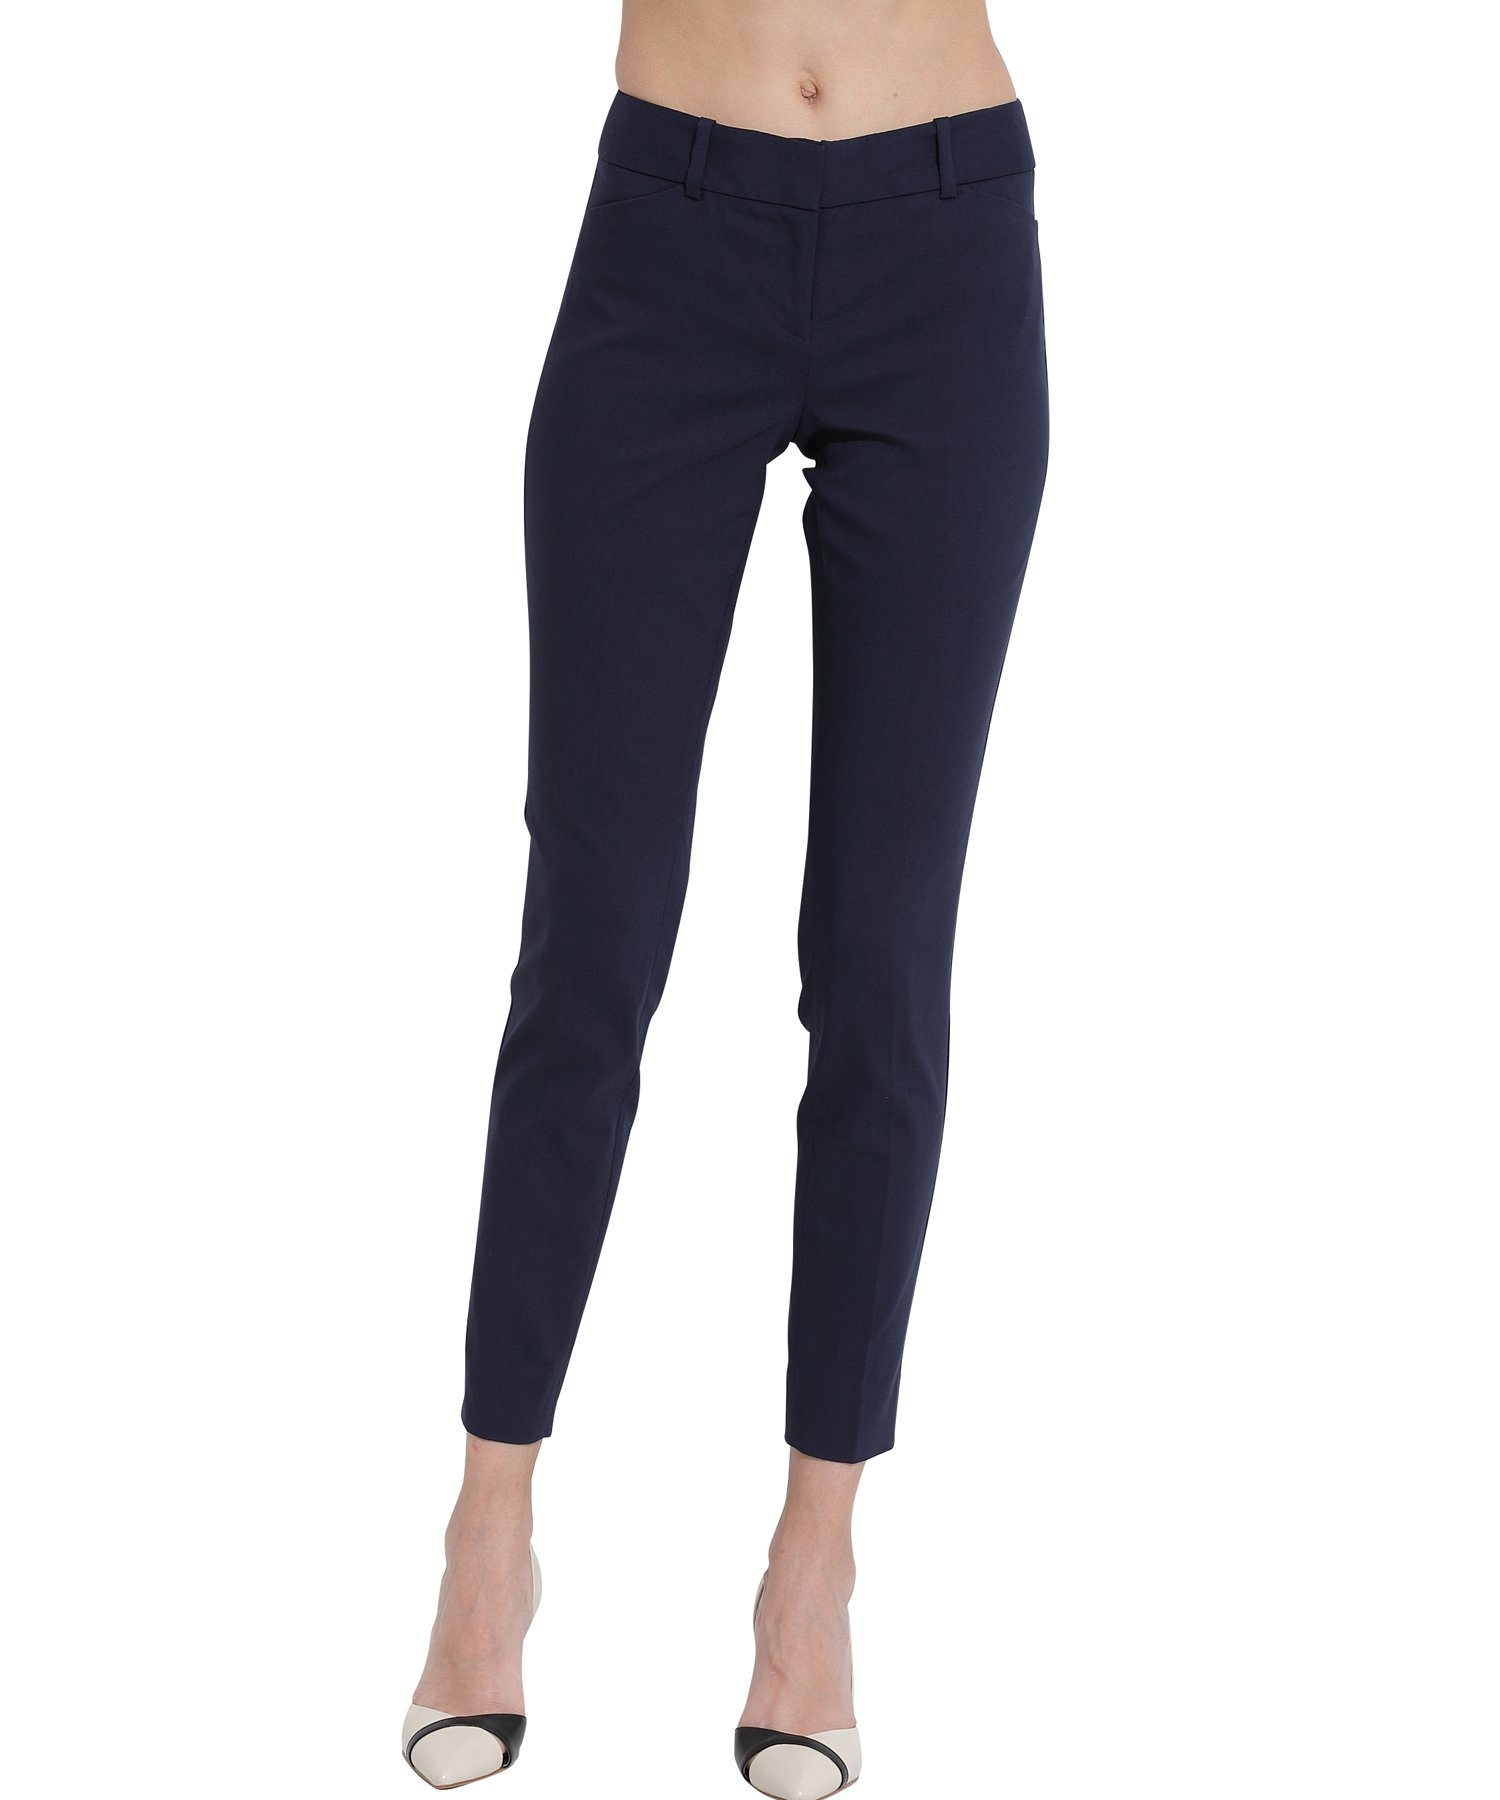 ATOUR Women Chic Skinny Cigarette Trousers Casual Business Pants Slim Fit Navy Size 12